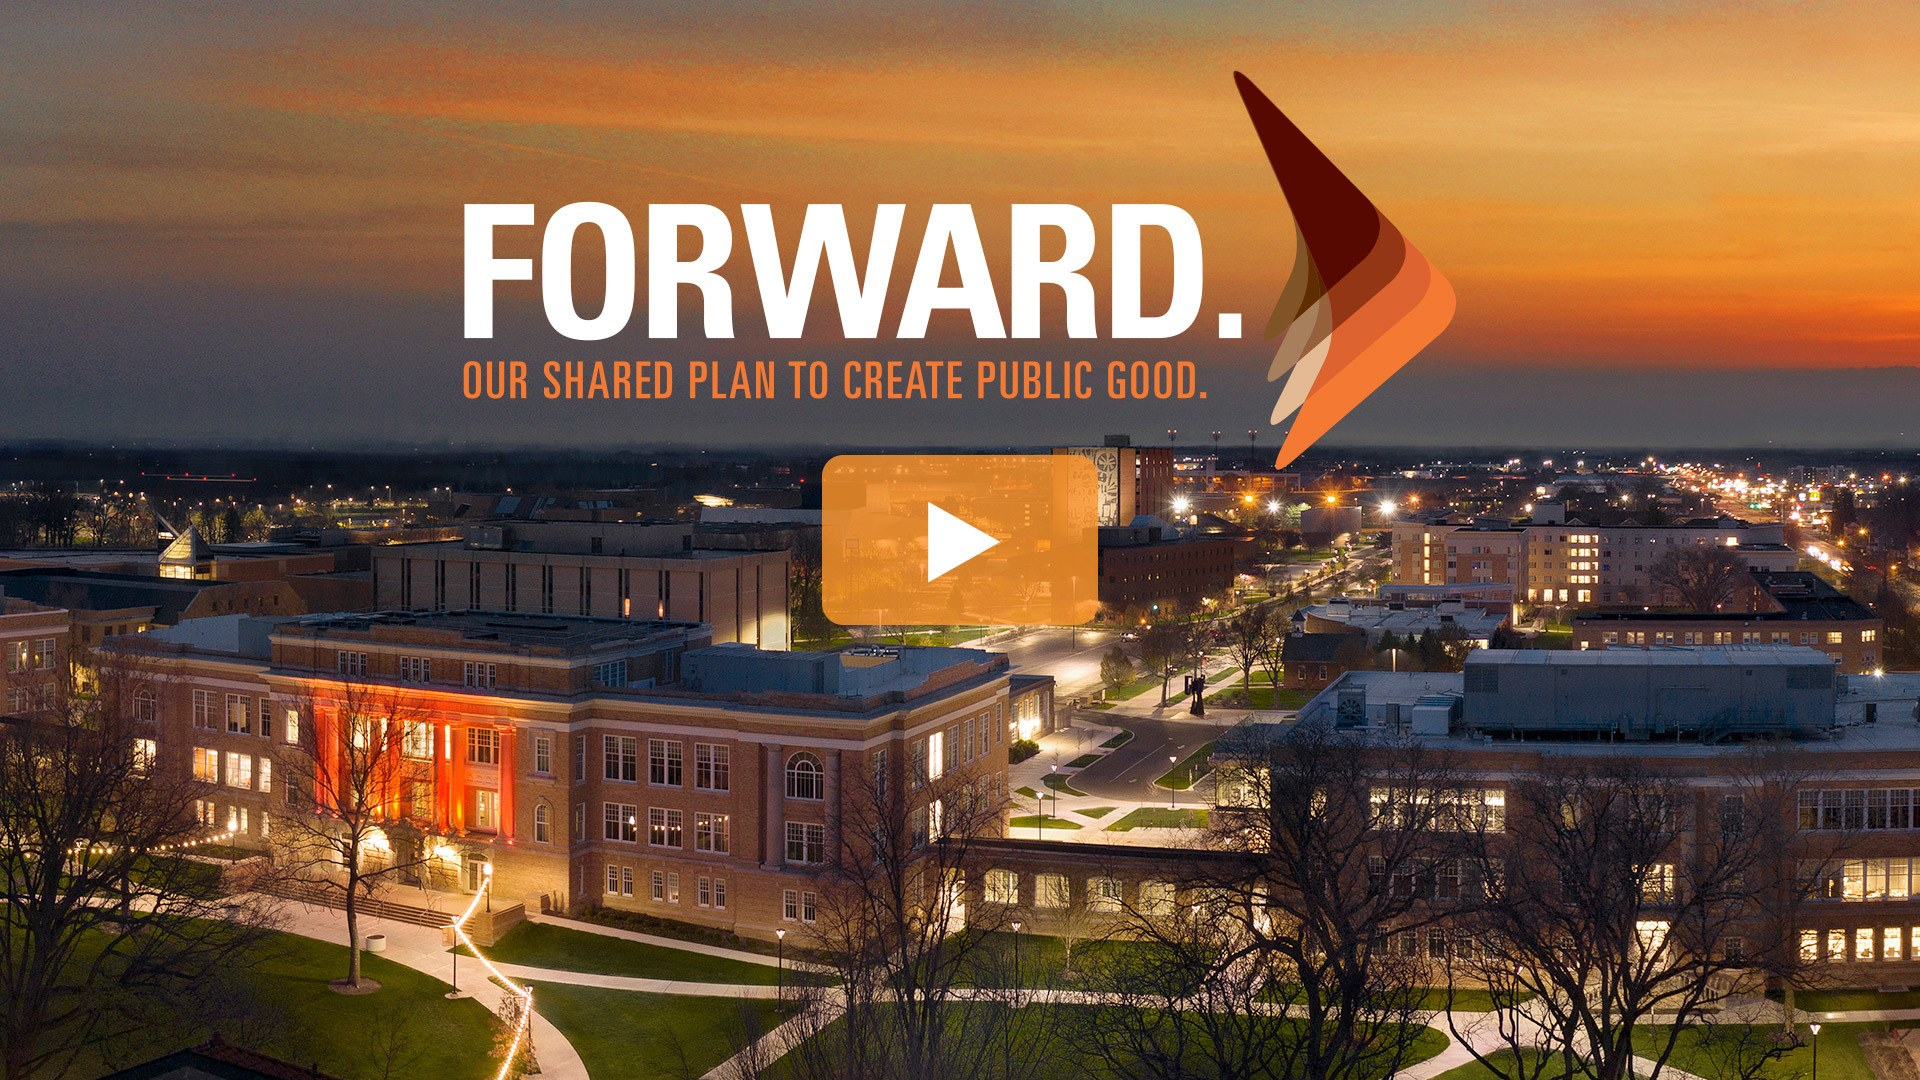 Video player for 'Forward - Our shared plan to create public good.'